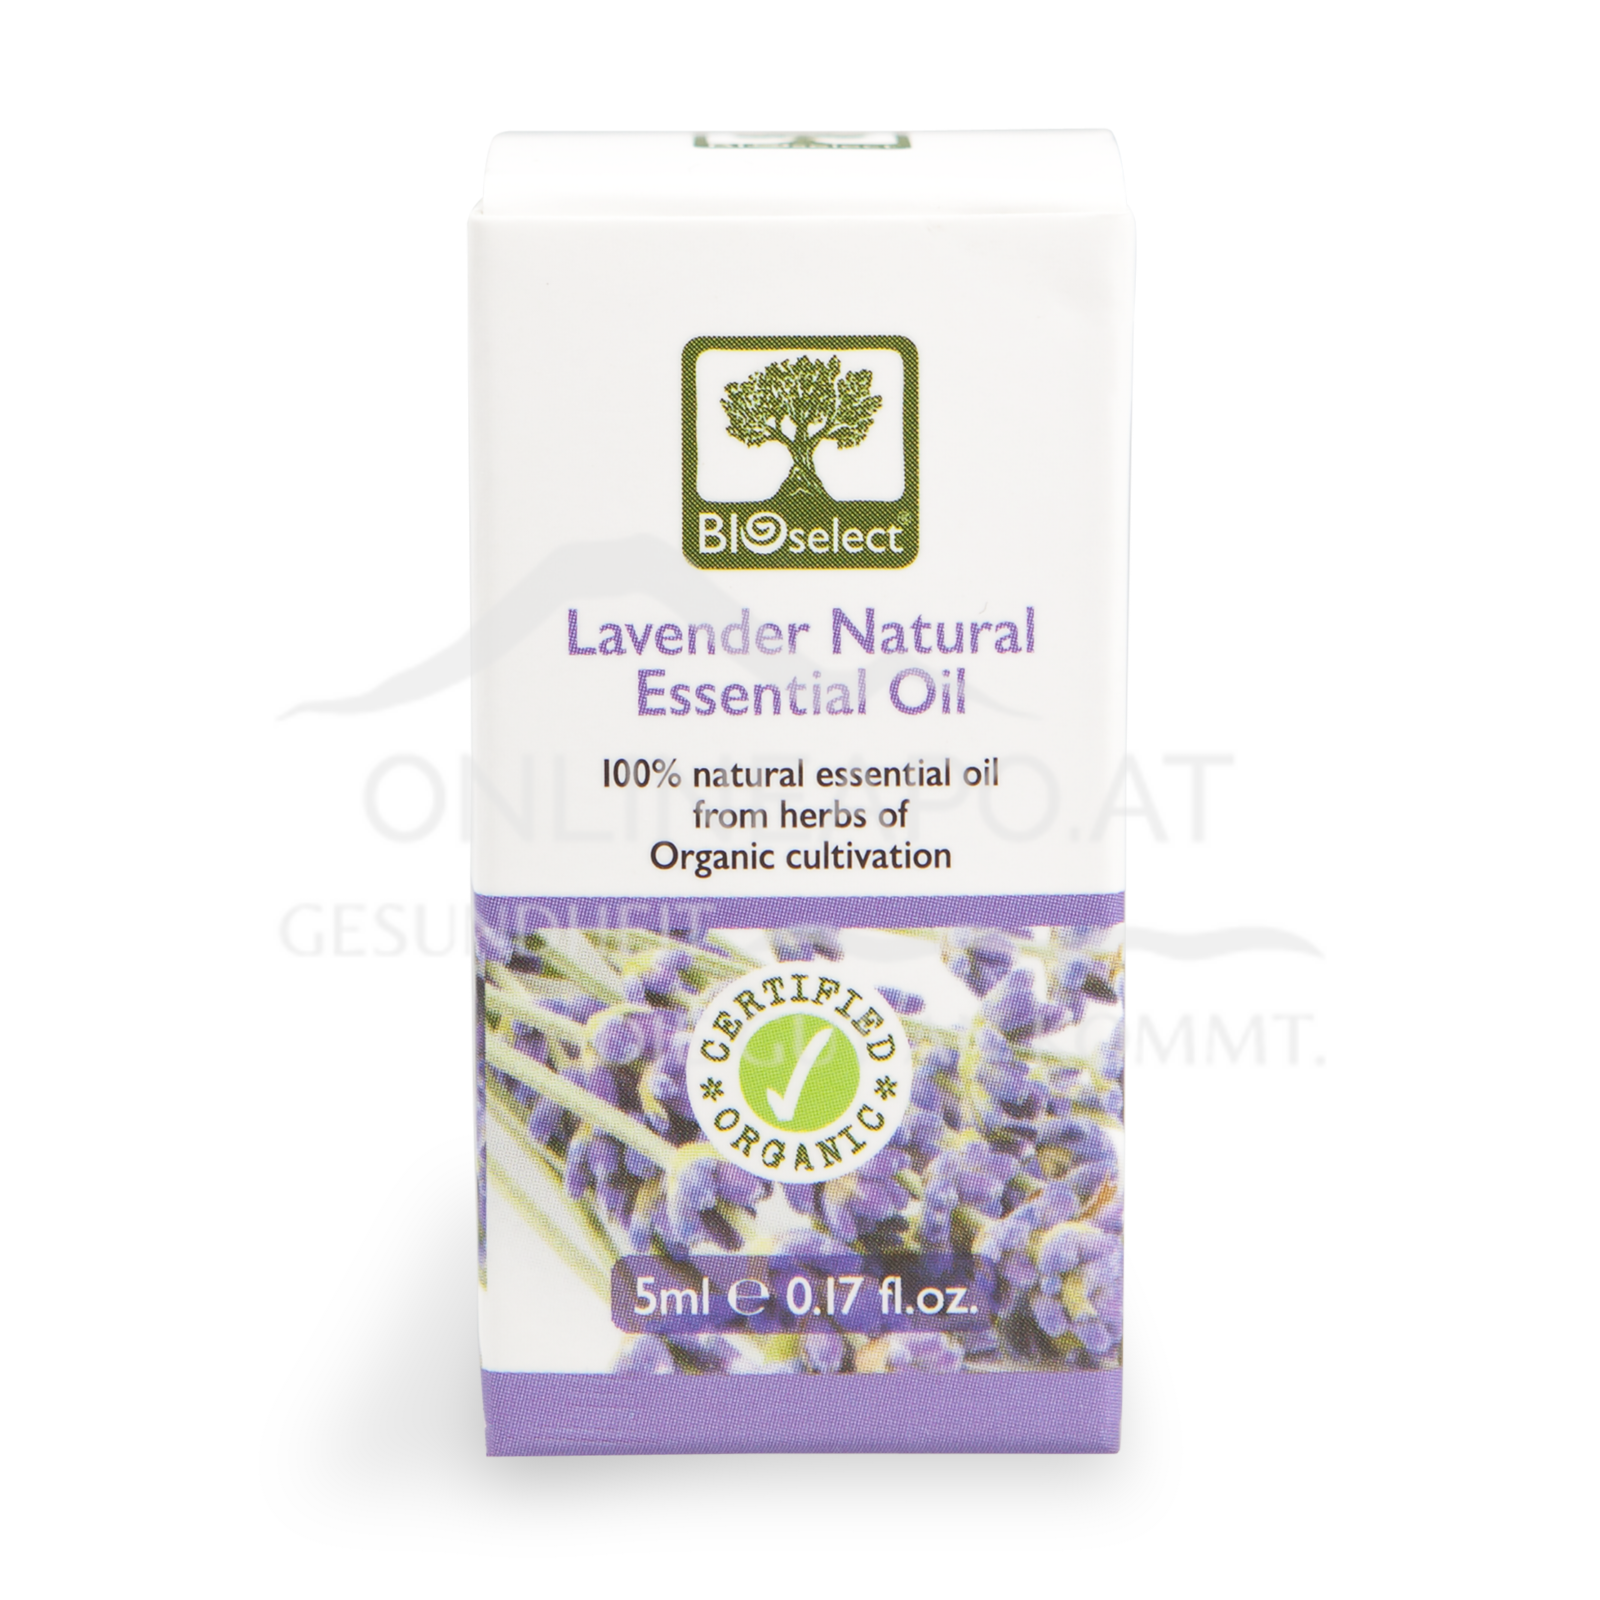 Bioselect Lavender Natural Essential Oil Certified Organic